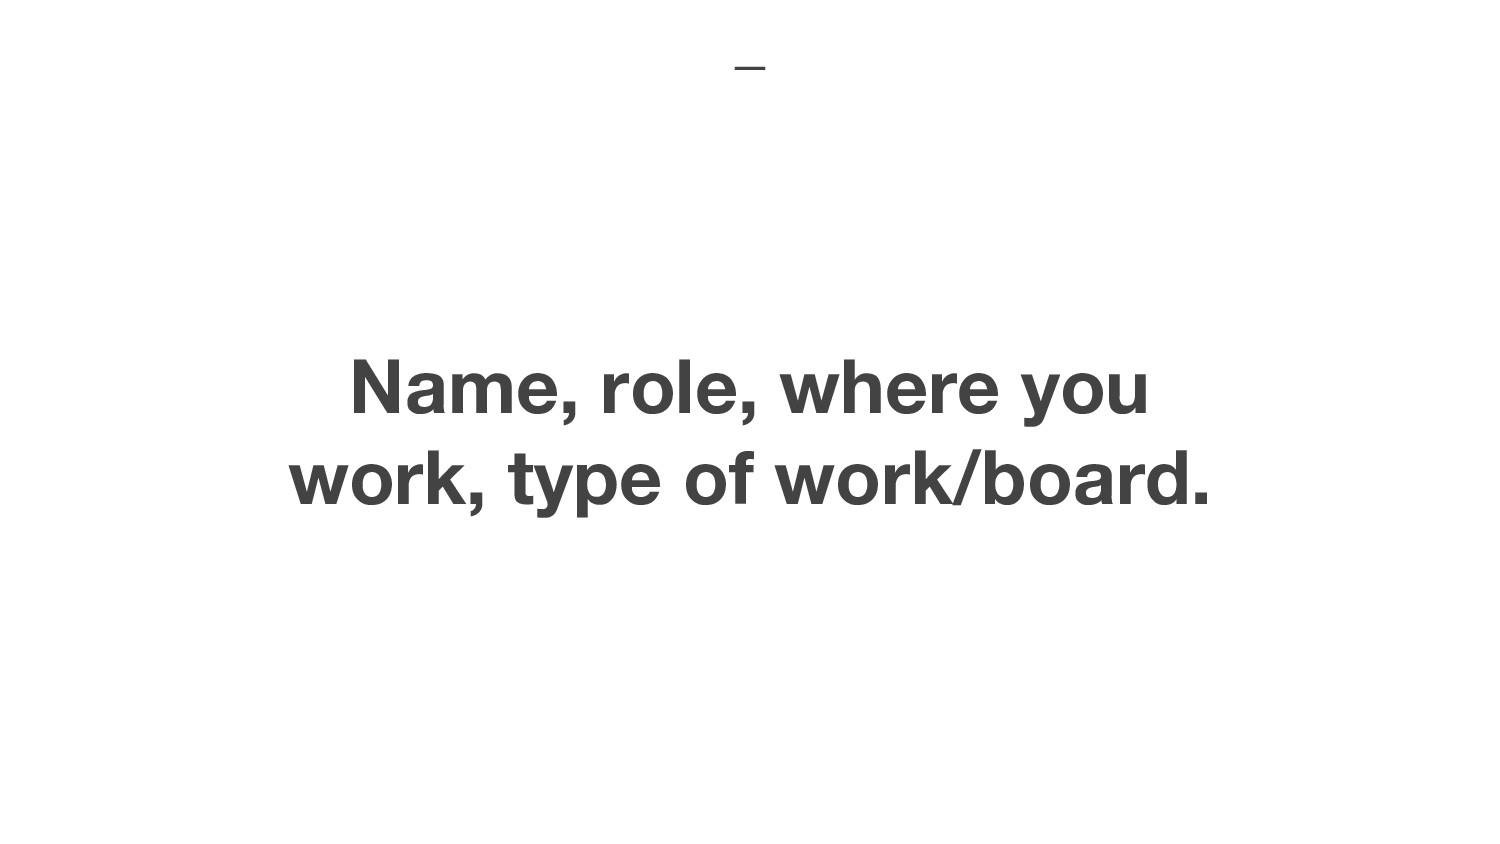 Name, role, where you work, type of work/board.